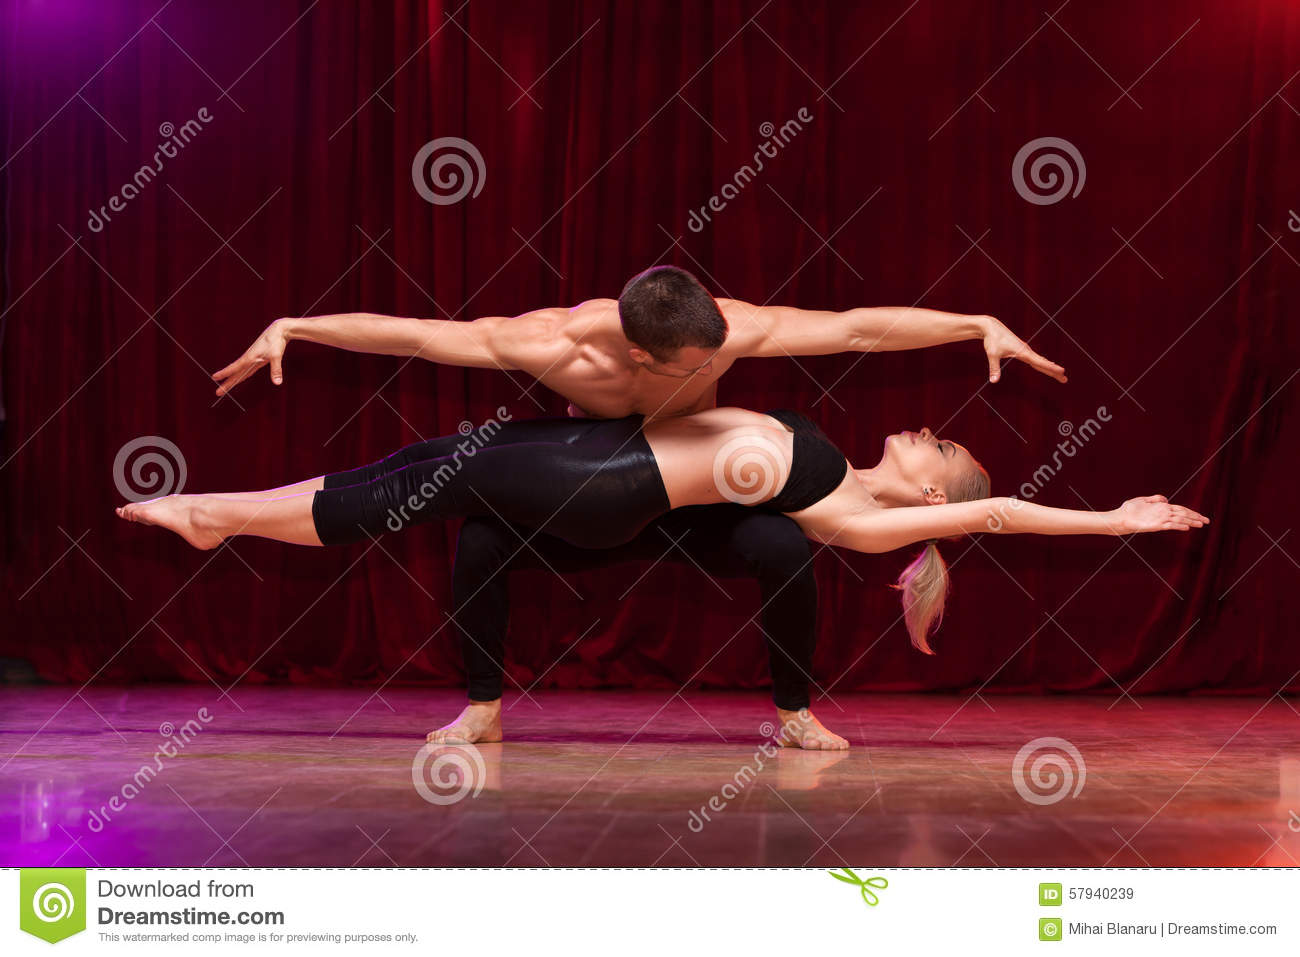 Balanced pose of an athletes couple performing an artistic duet.